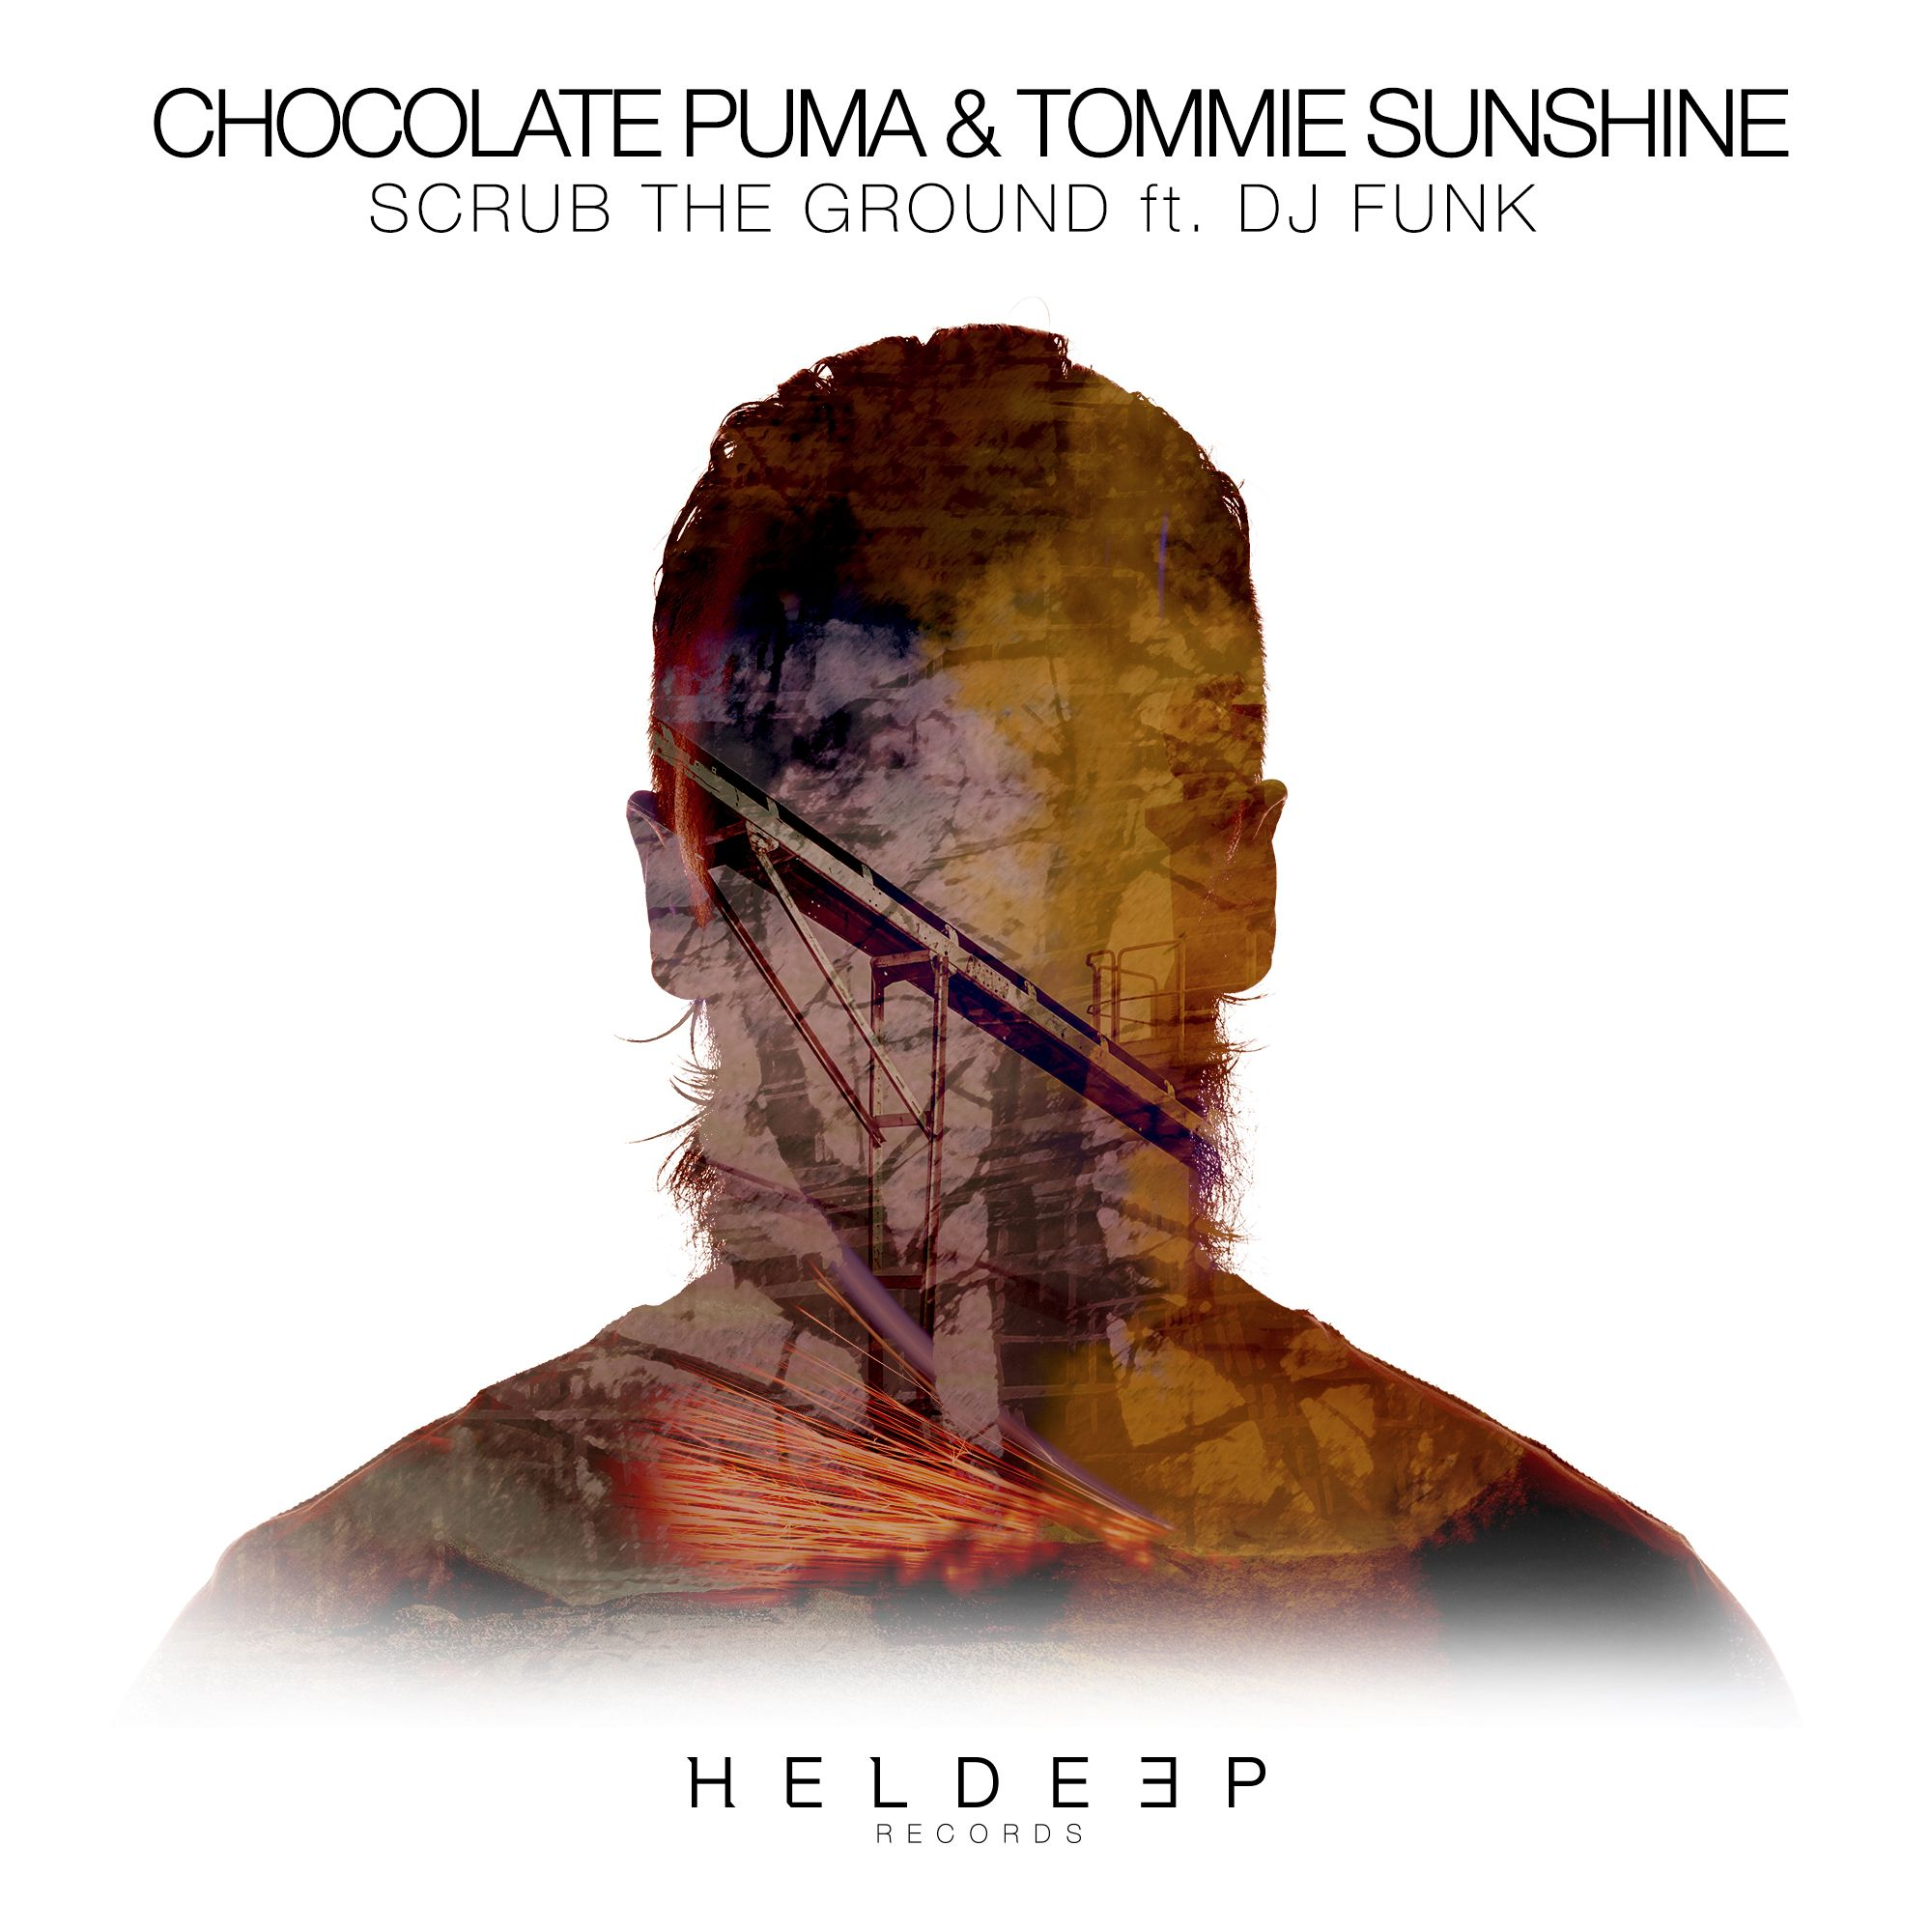 Chocolate Puma & Tommie Sunshine Feat. DJ Funk - Scrub The Ground (Radio Edit) скачать бесплатно и слушать онлайн